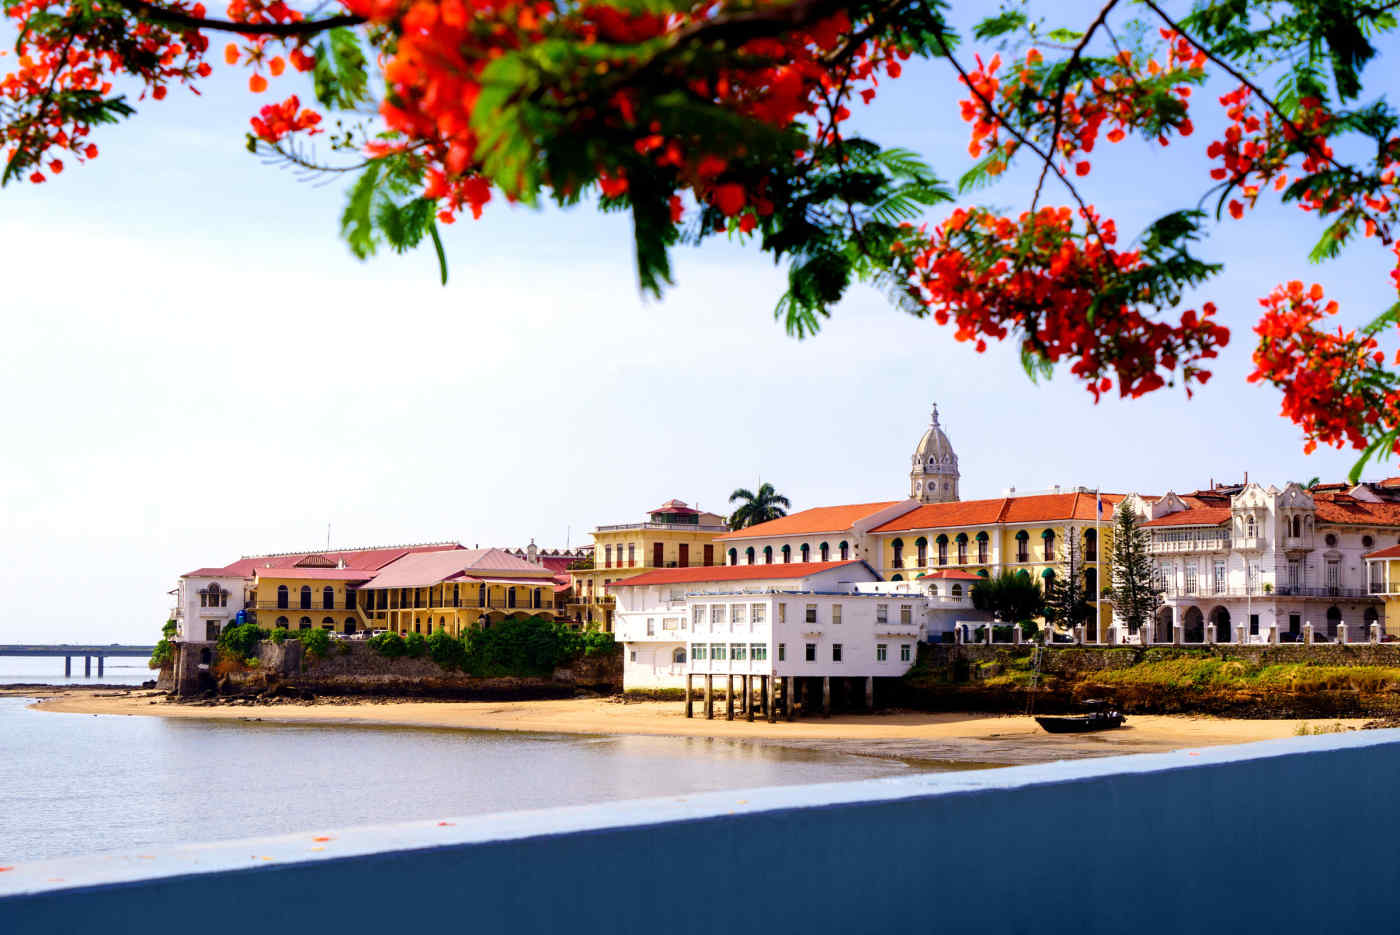 Casco Viejo in Panama City